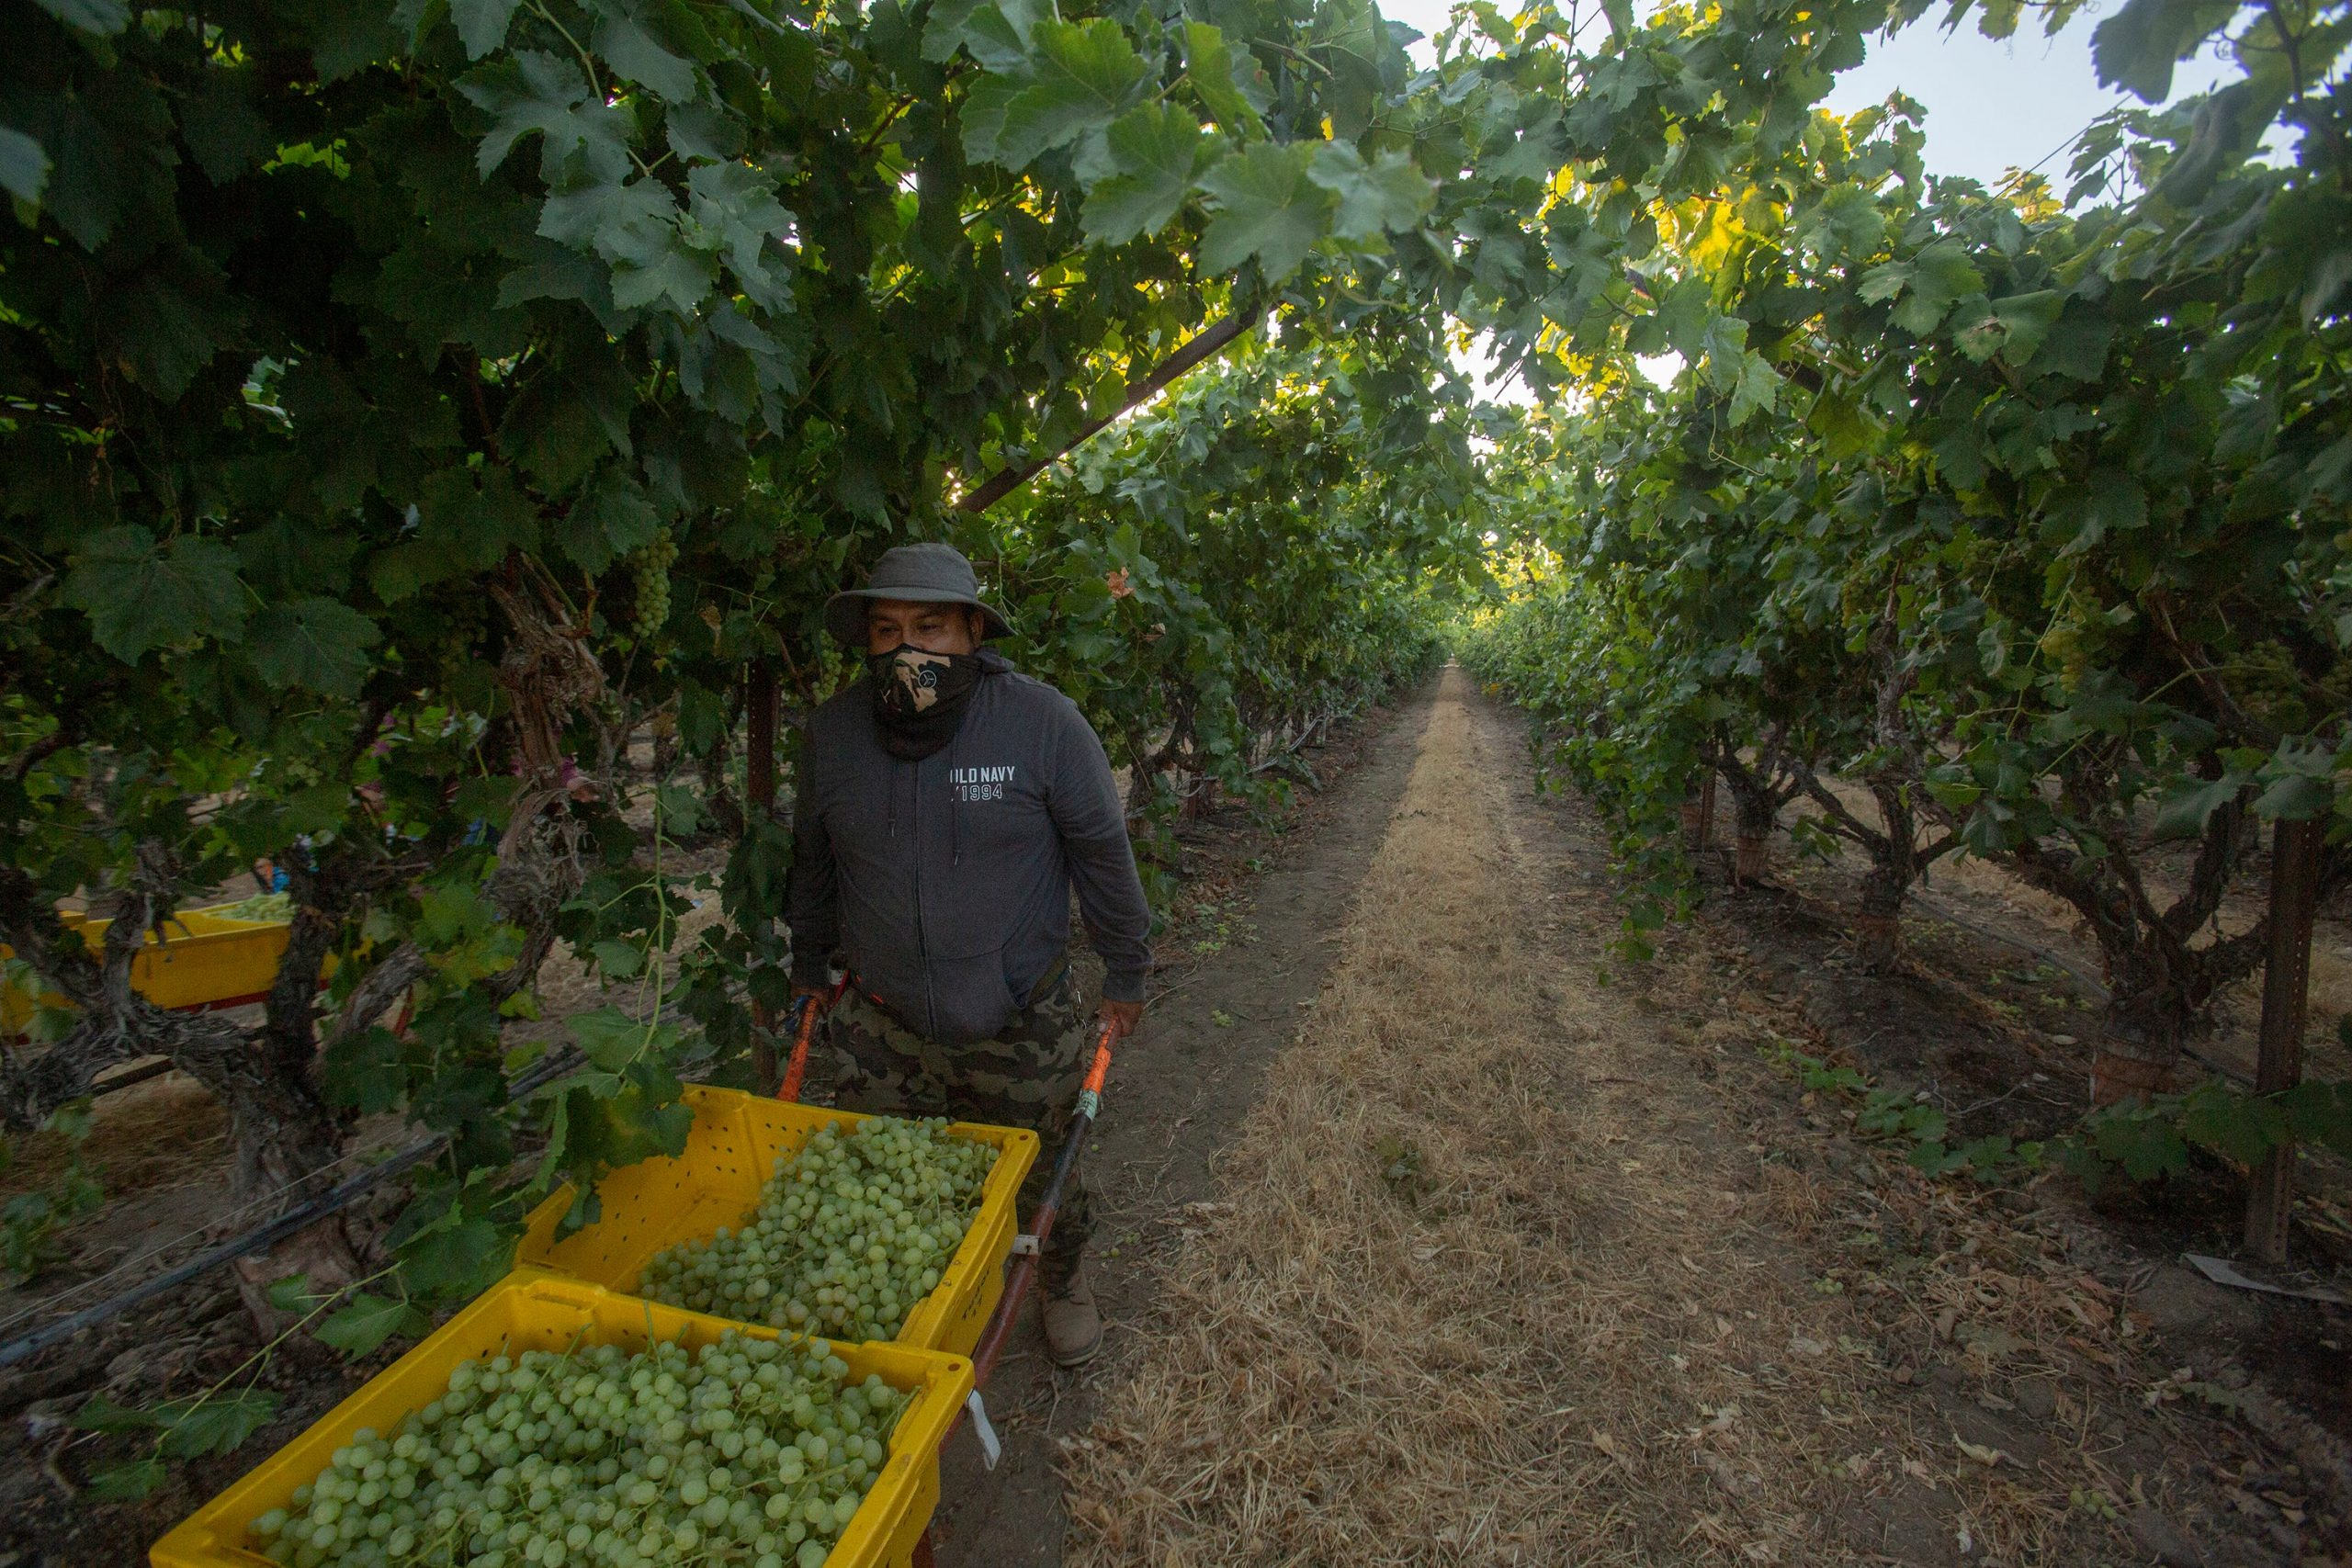 California city OKs controversial 'hero pay' for farmworkers, other essential workers